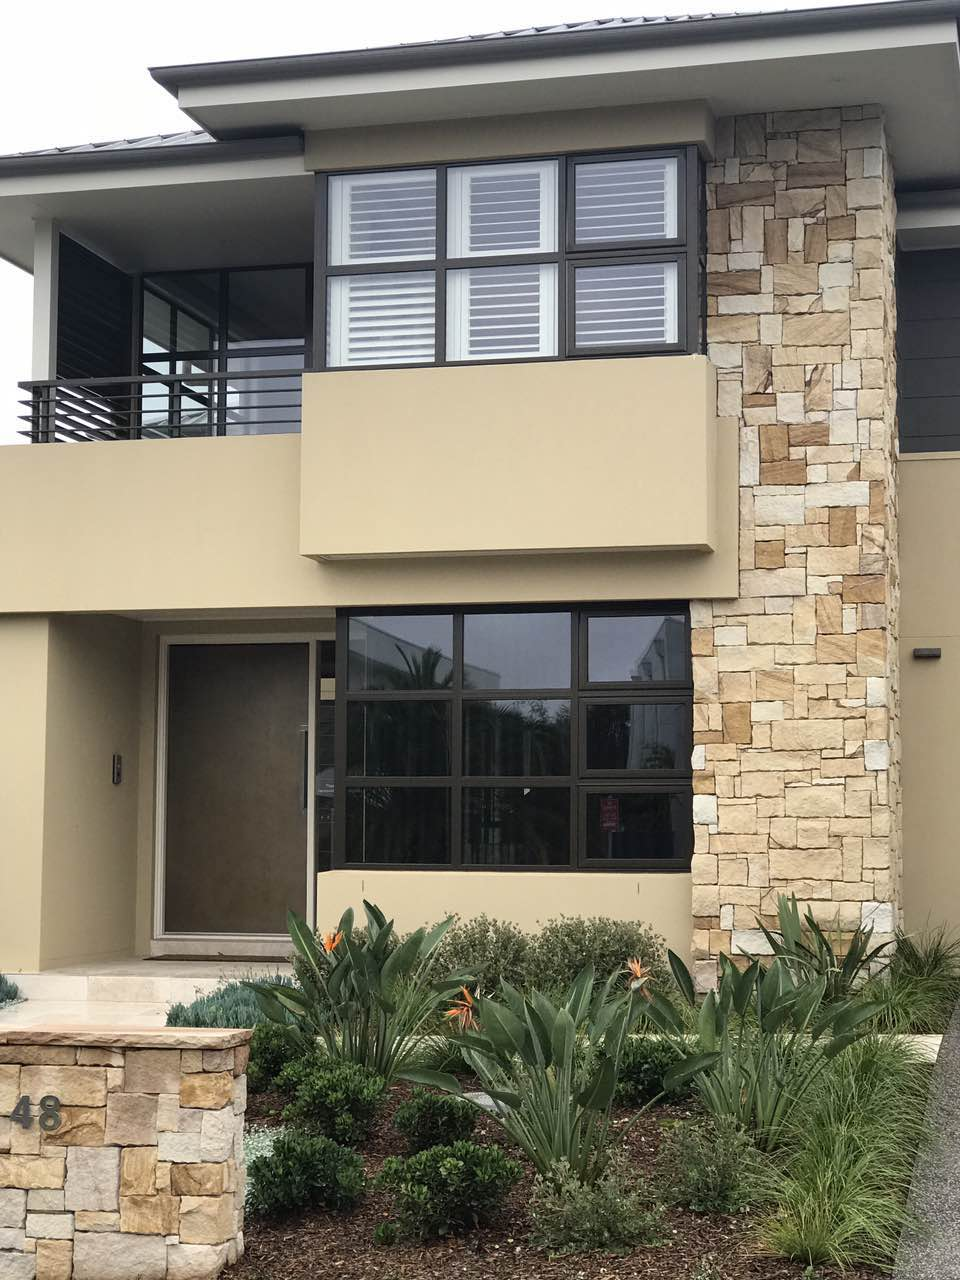 Residential building project using Aussietecture Australian sandstone wall claddings in exterior wall and garden design